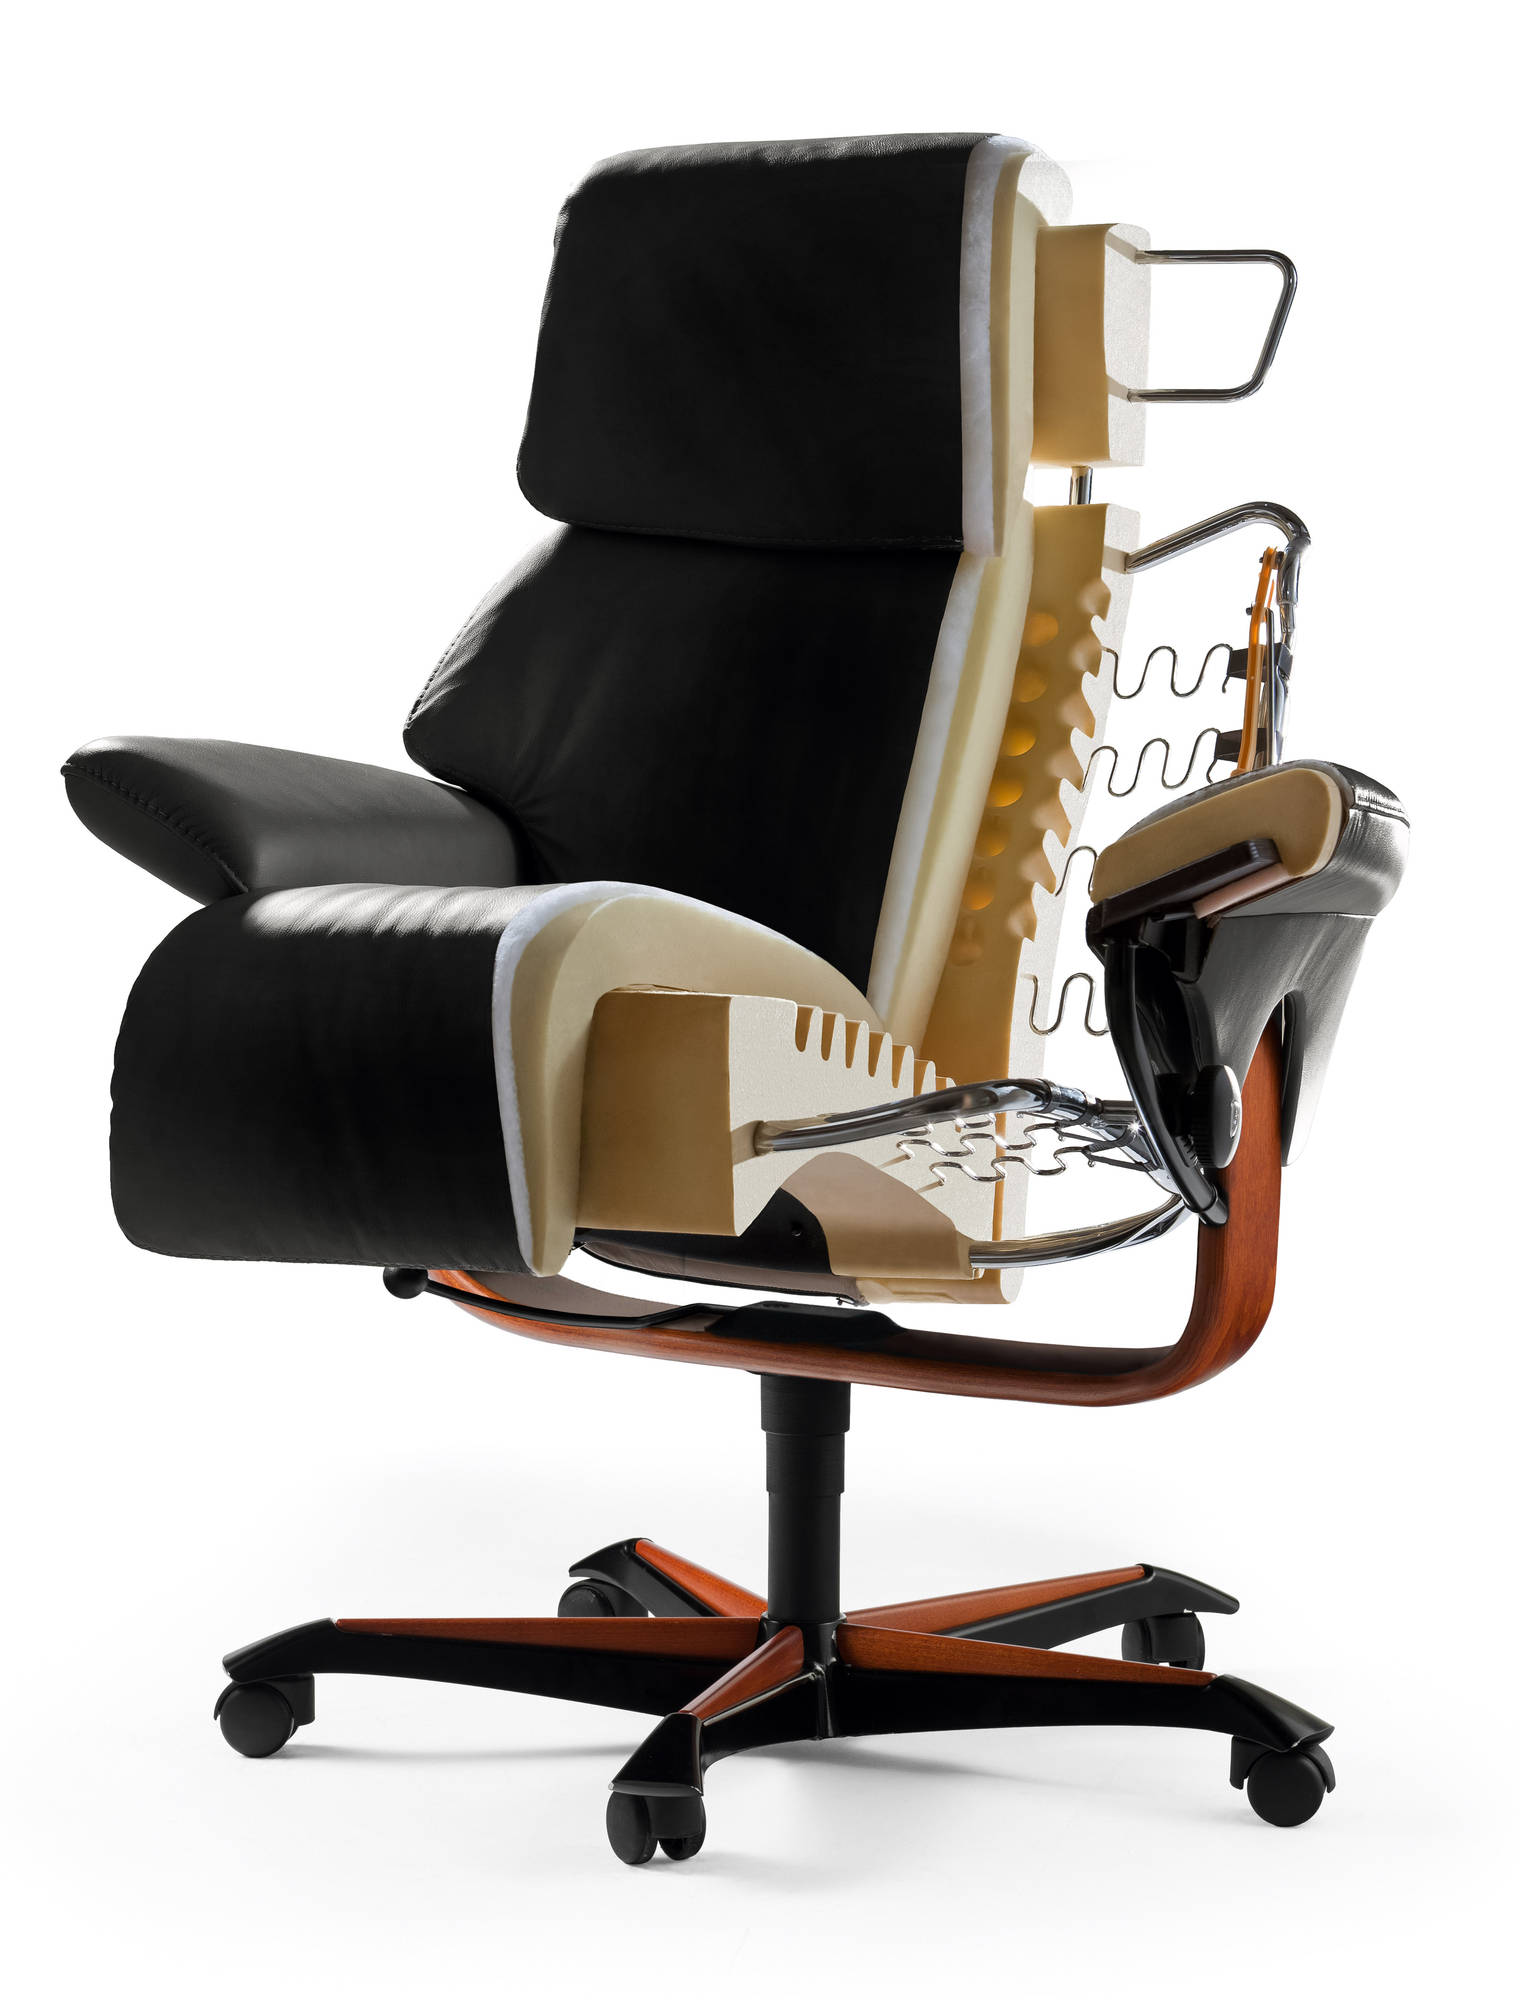 Stressless Office Chair Ekornes Stressless Consul Office Chairs Authorized